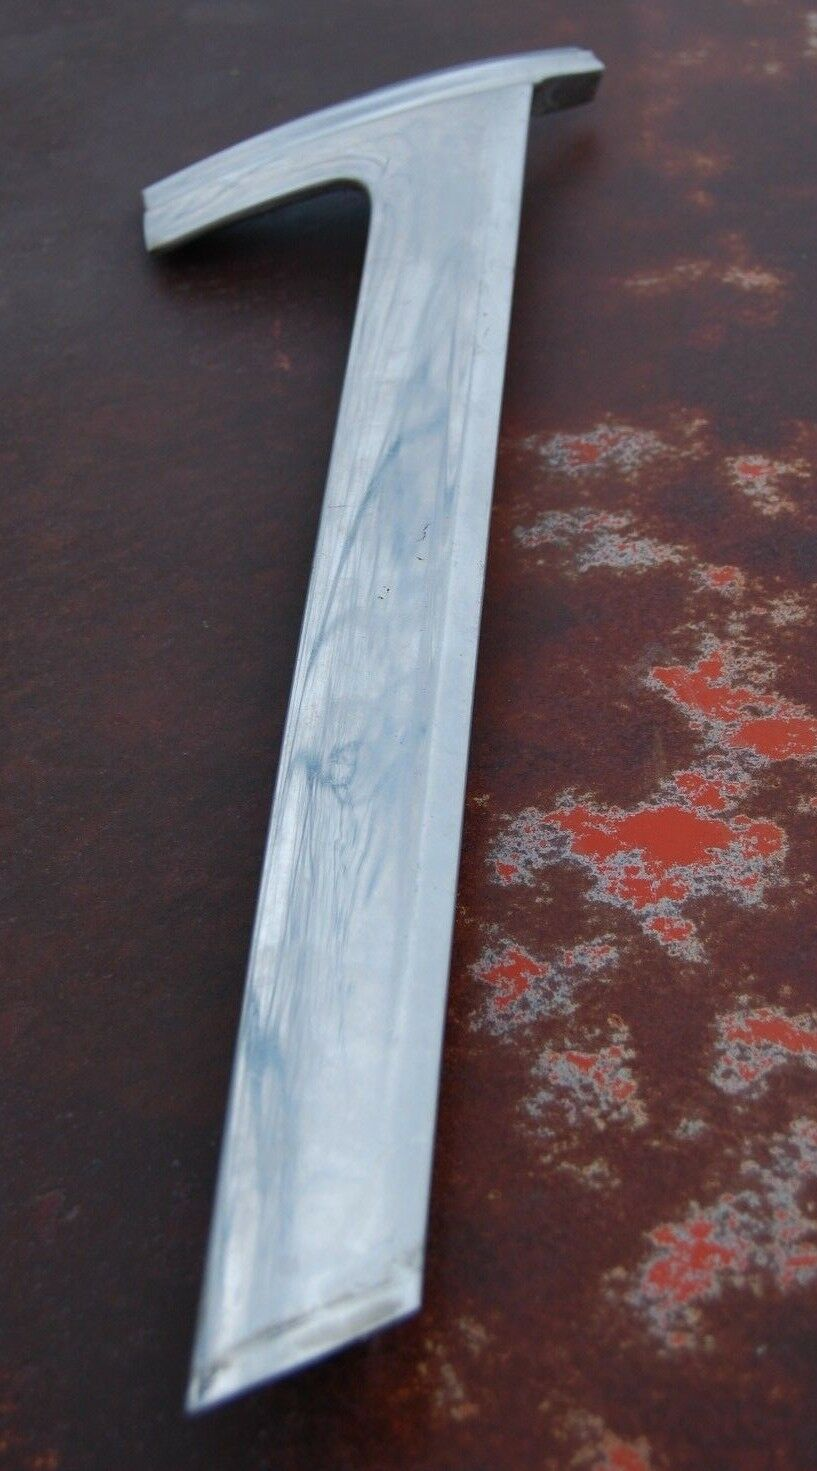 1964 Mercury Maurauder 4 DR Fastback Chrome Driver Side LH Window Molding Trim